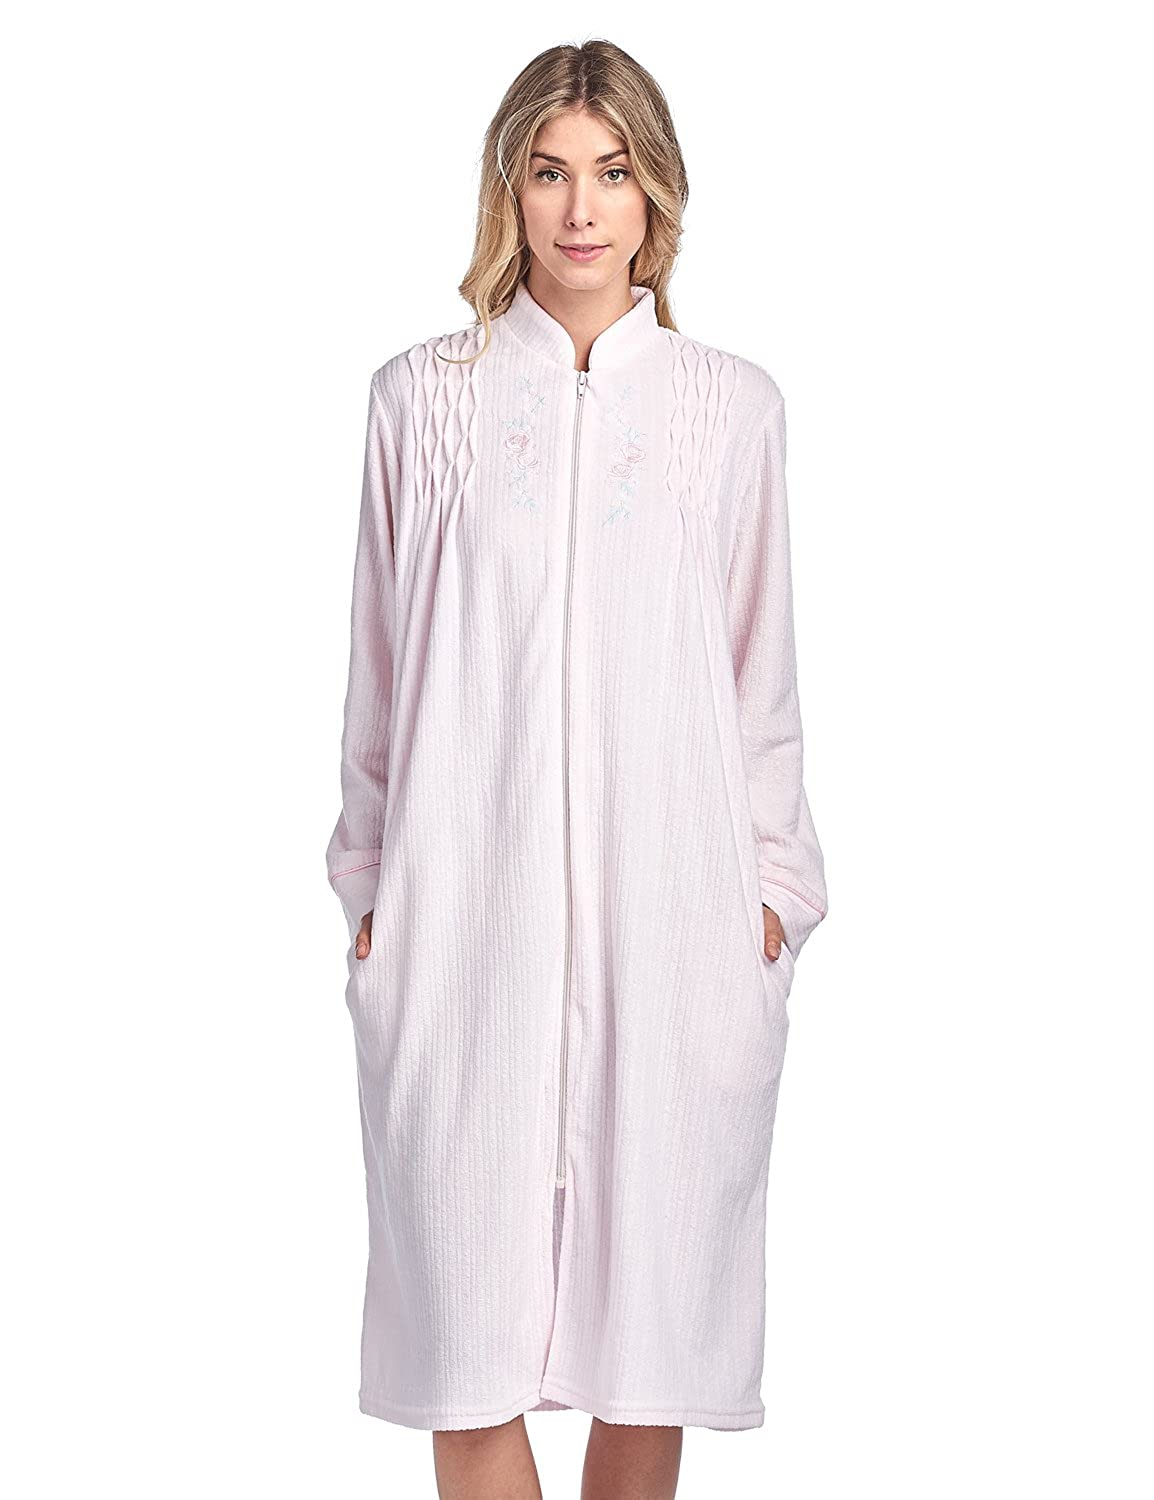 Casual Nights Women's Zipper Front Jacquard Terry Fleece Robe Duster Terry Short Robe